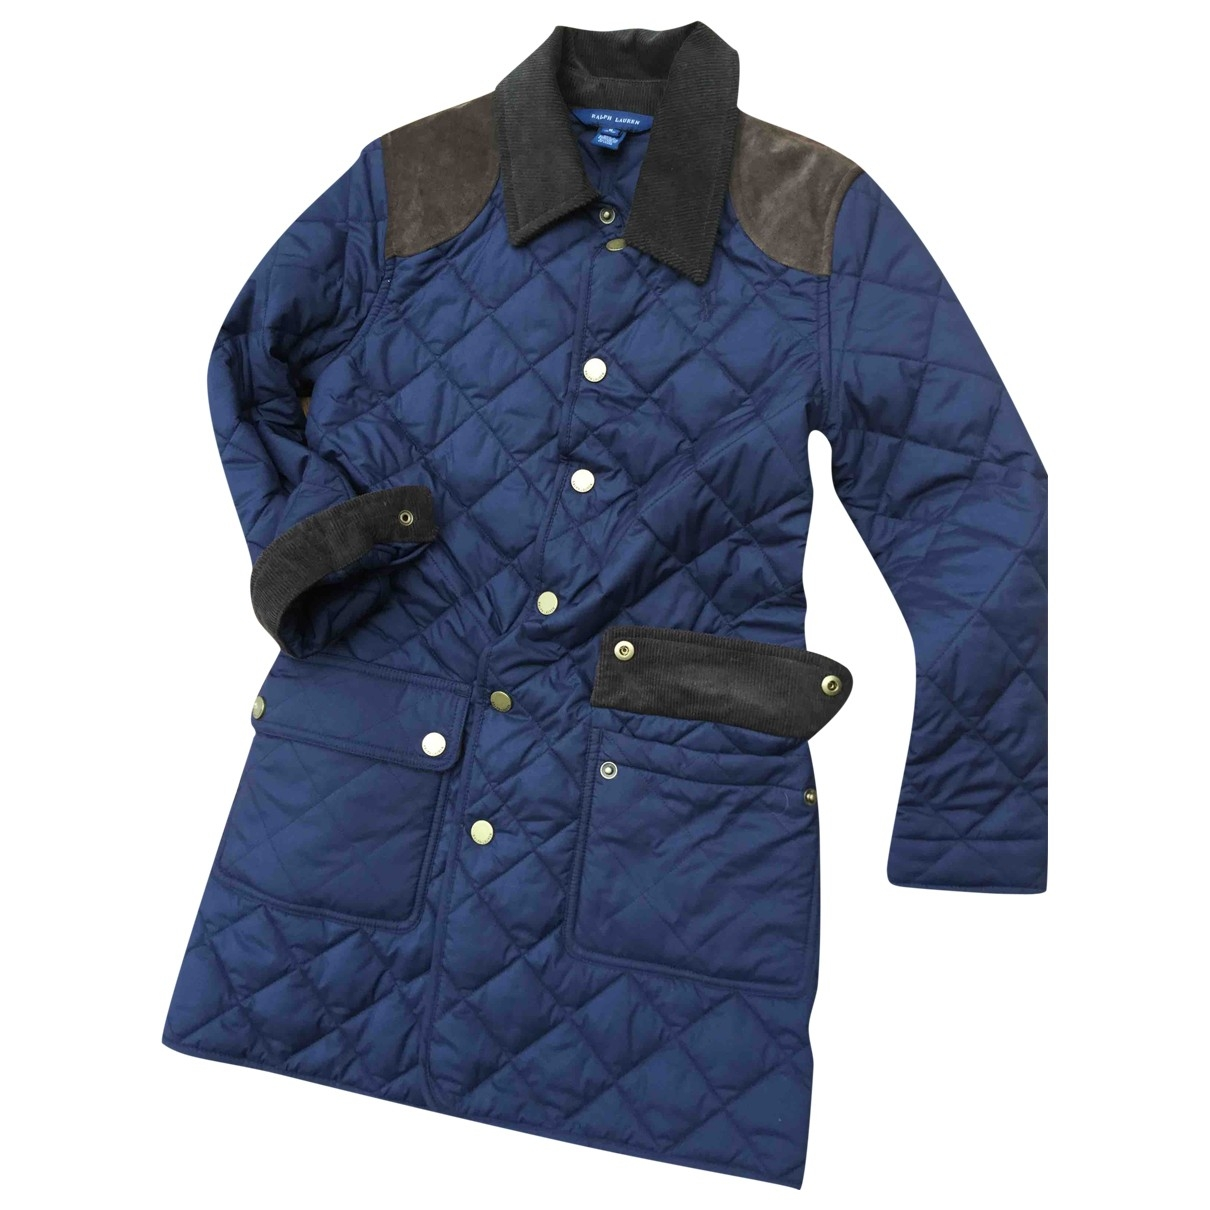 Ralph Lauren Collection \N Blue jacket & coat for Kids 8 years - until 50 inches UK